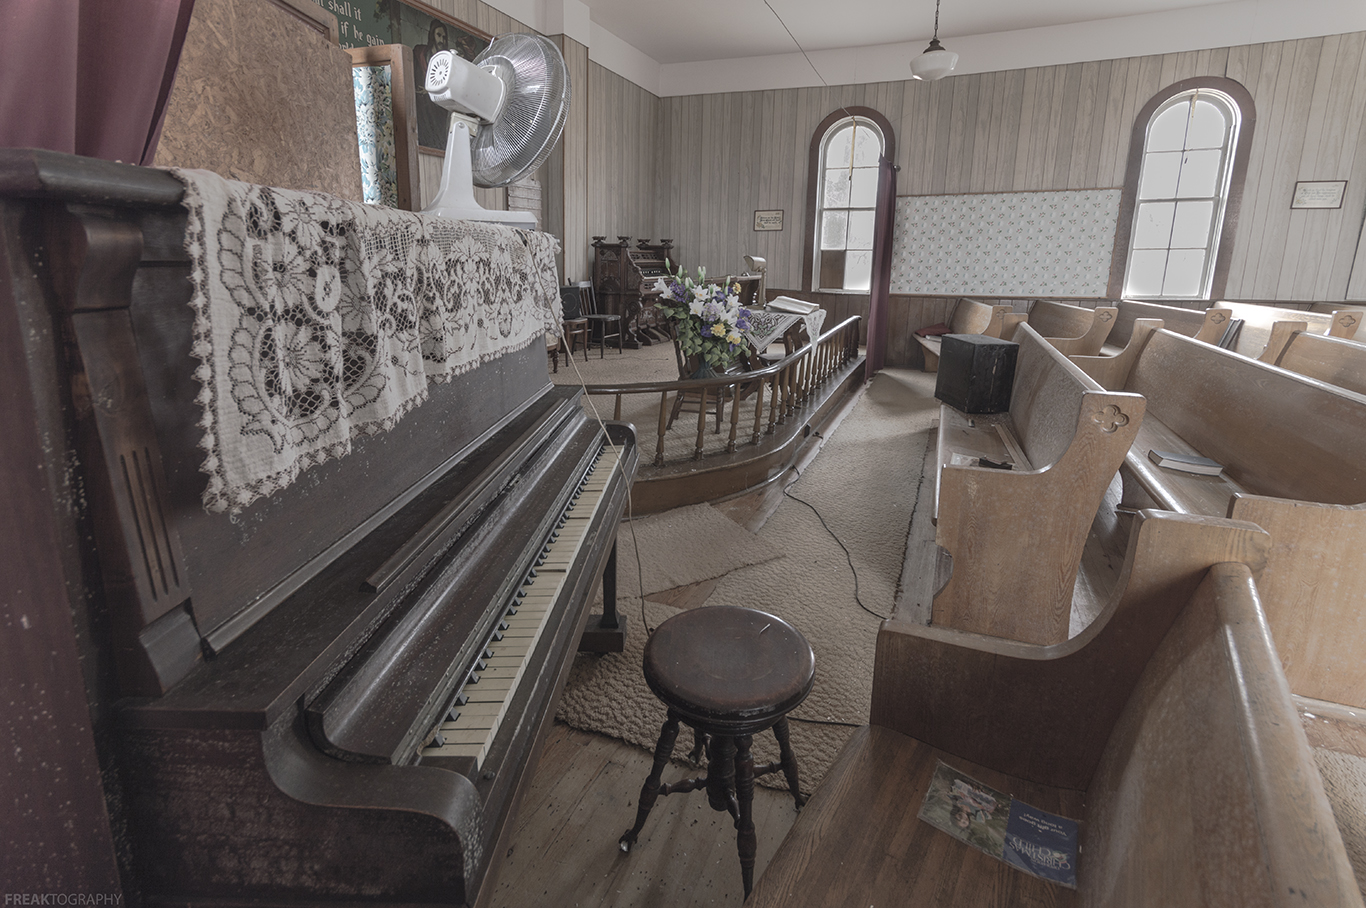 a piano in an abandoned church by freaktography